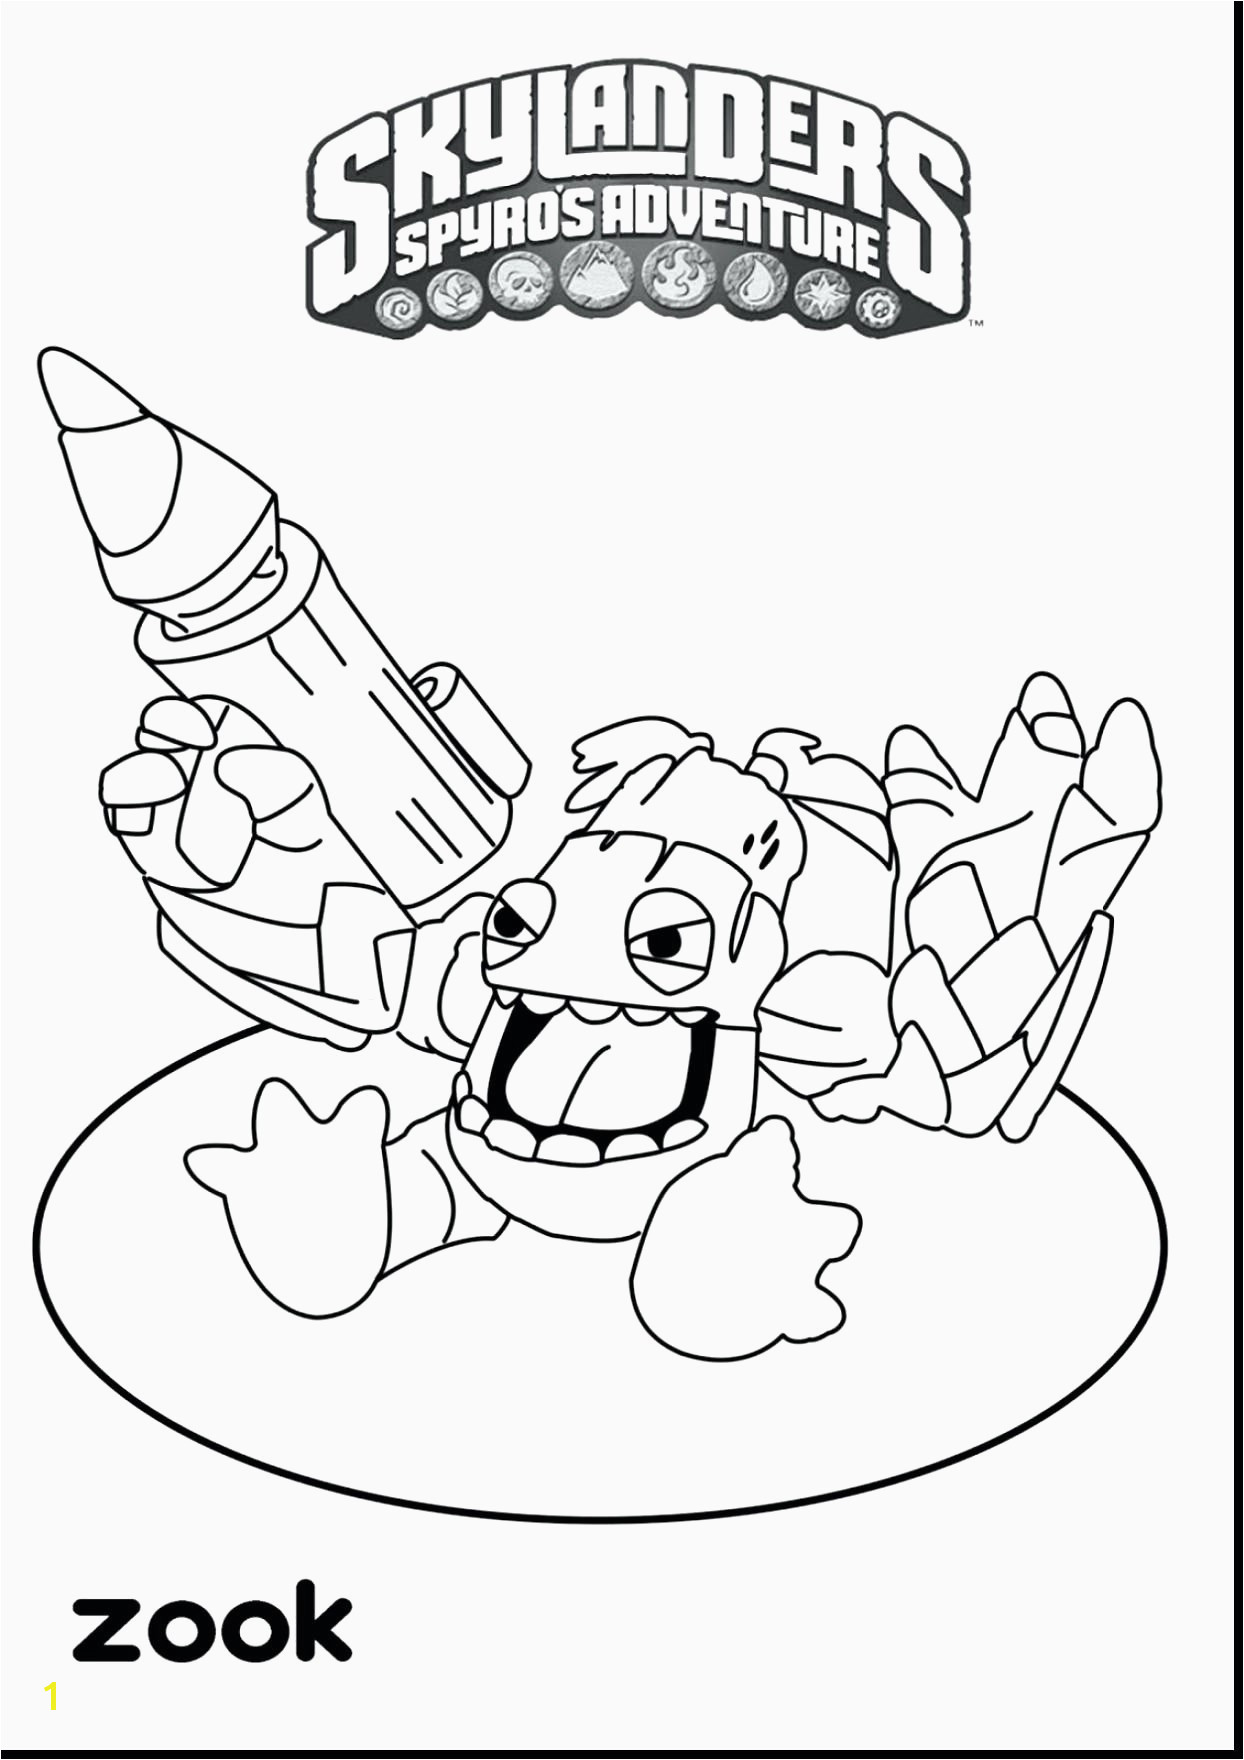 Picture to Coloring Page Fresh Be Mine Coloring Pages Unique Cool Coloring Page Unique Witch